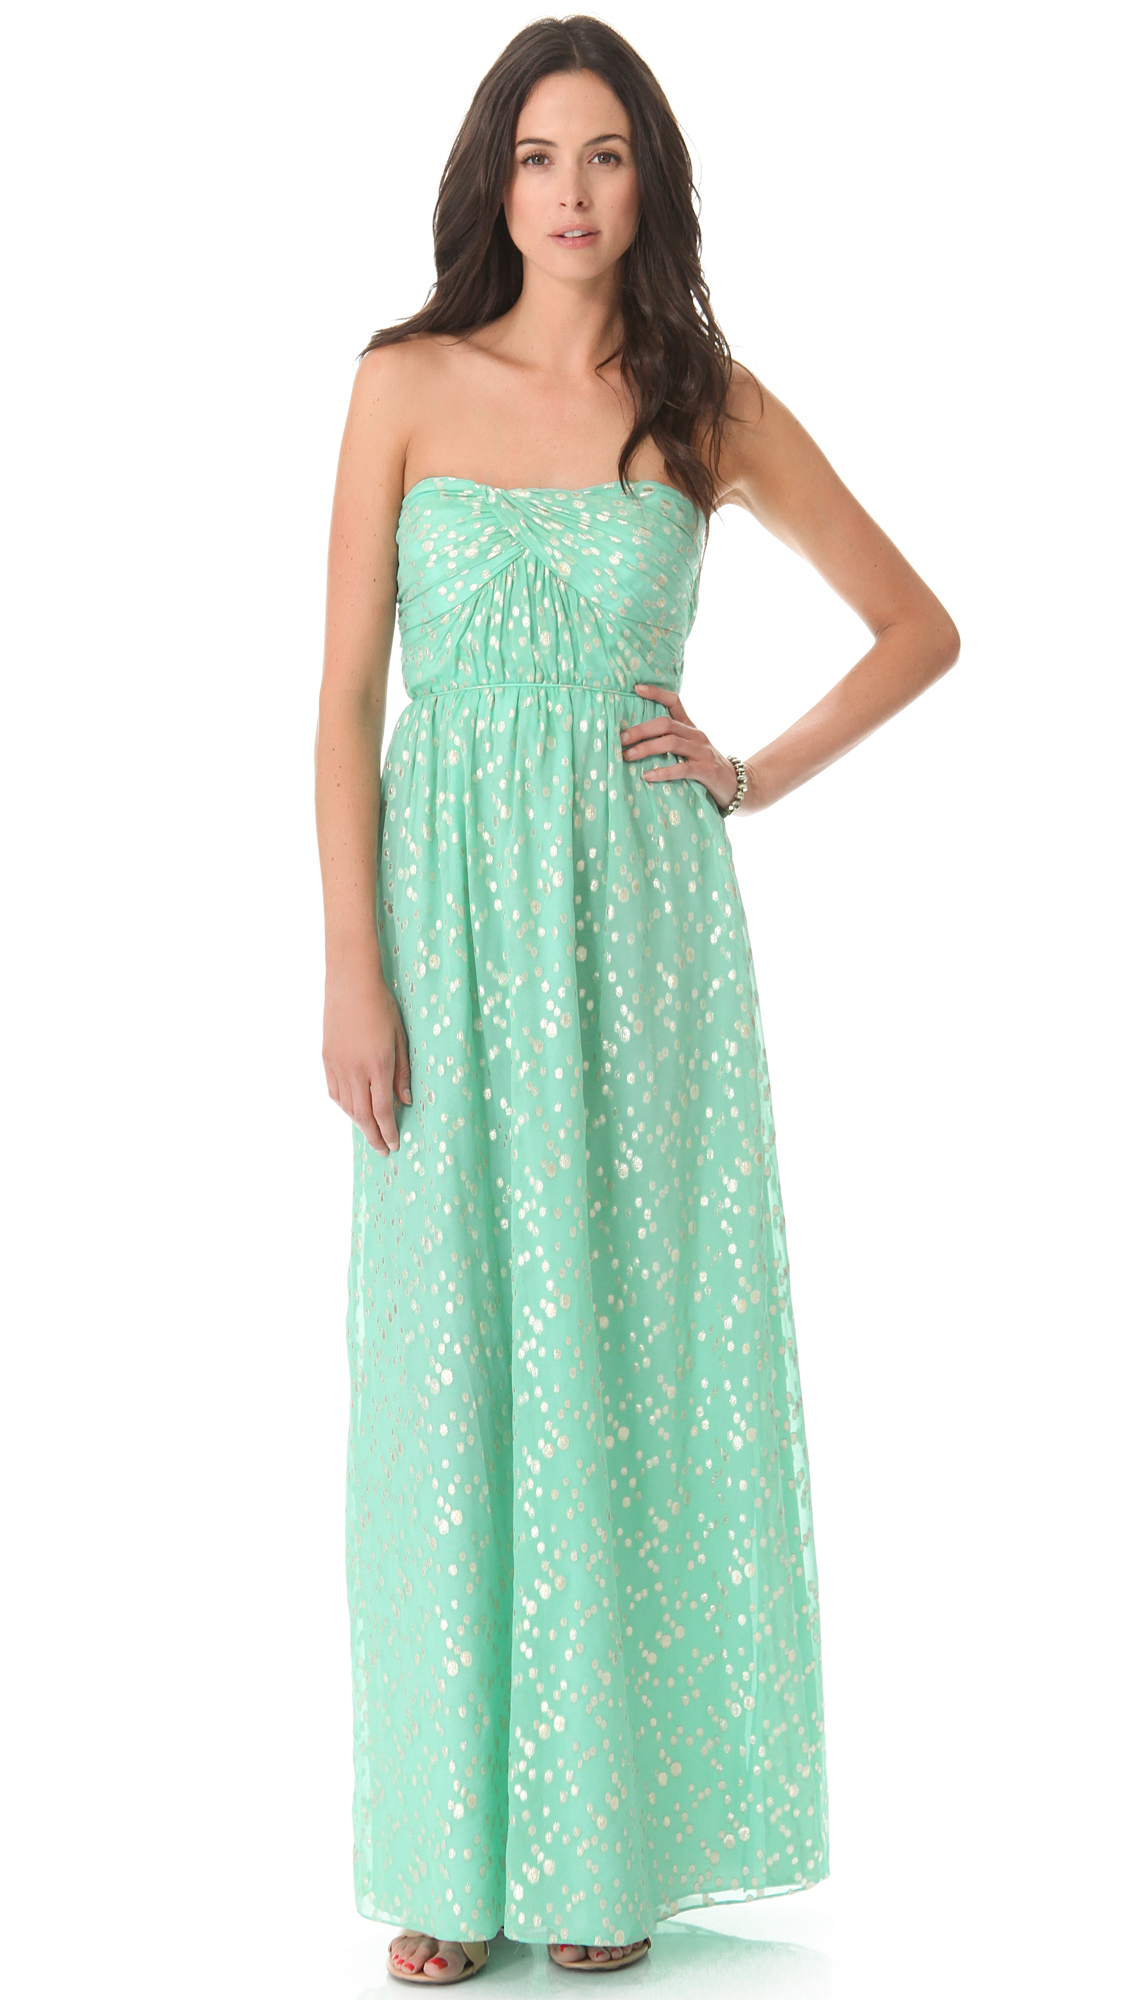 Shoshanna Jennifer Strapless Maxi Dress - Aqua in Blue - Lyst